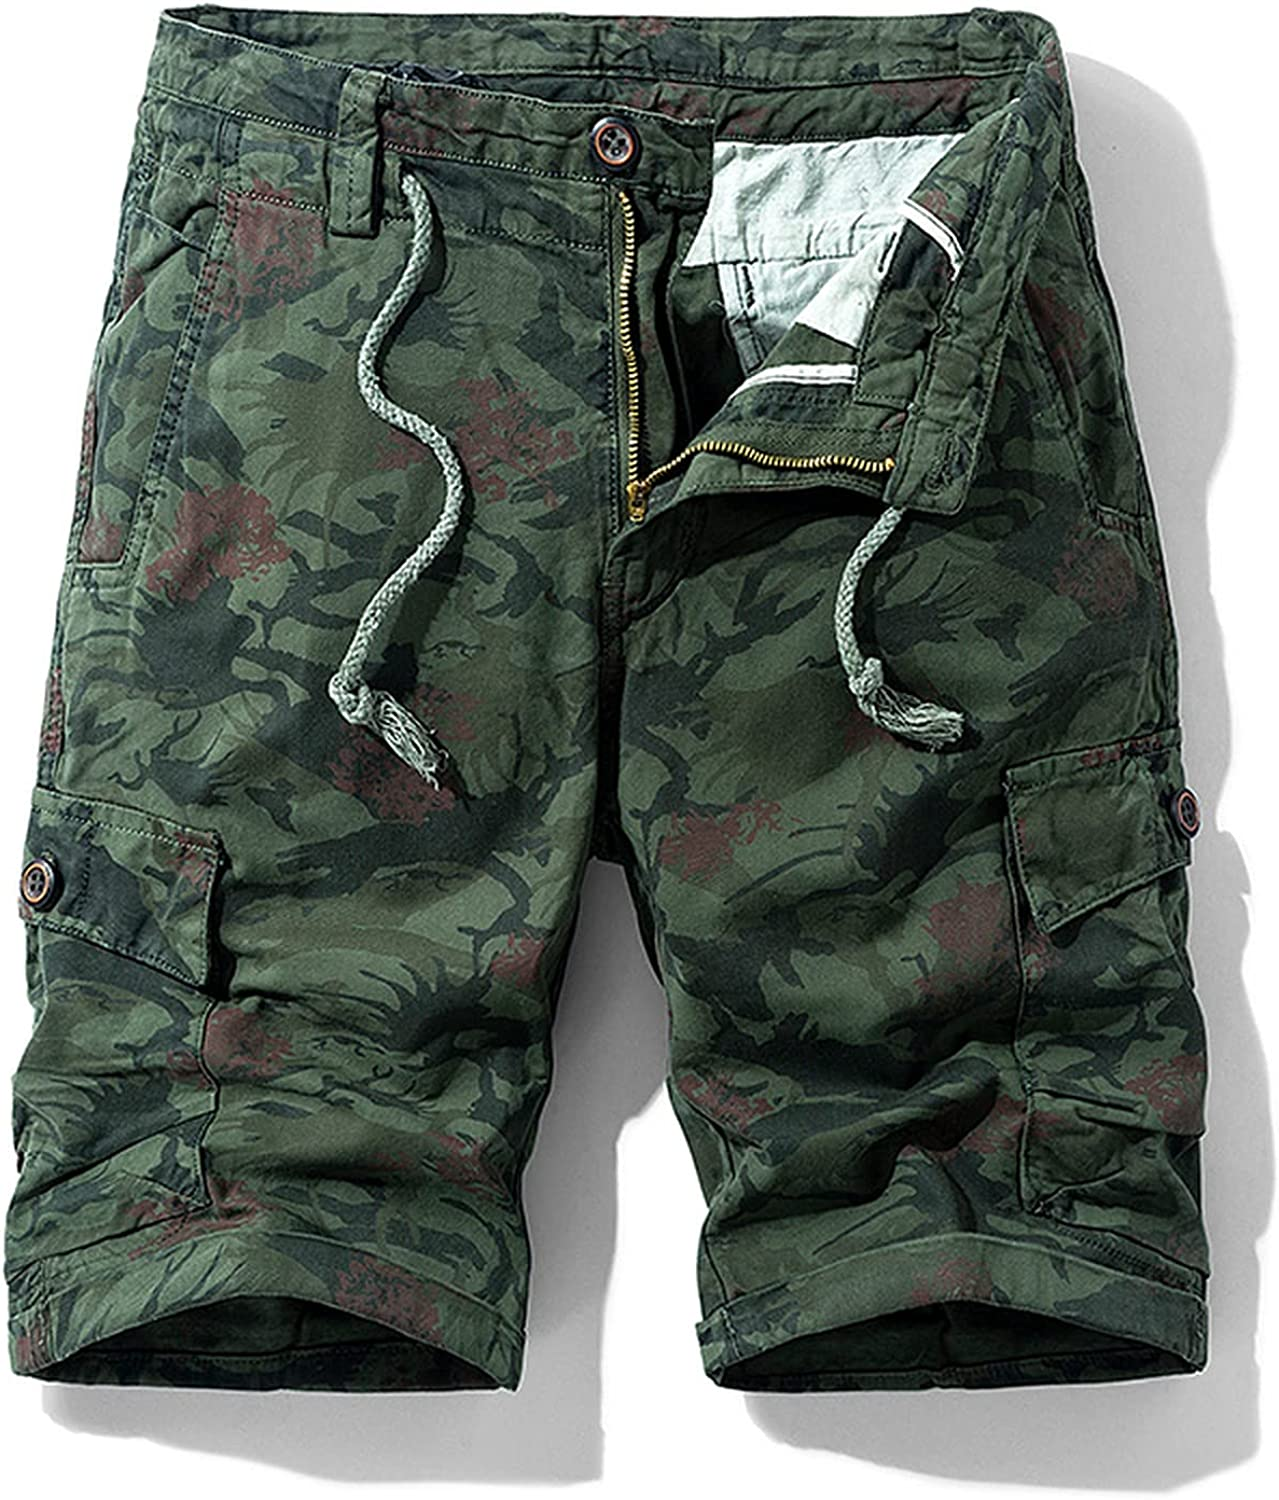 Dellk Mens Military Cargo Shorts New Army Camouflage Tactical Men Cotton Loose Work Casual Short Pants Plus Size